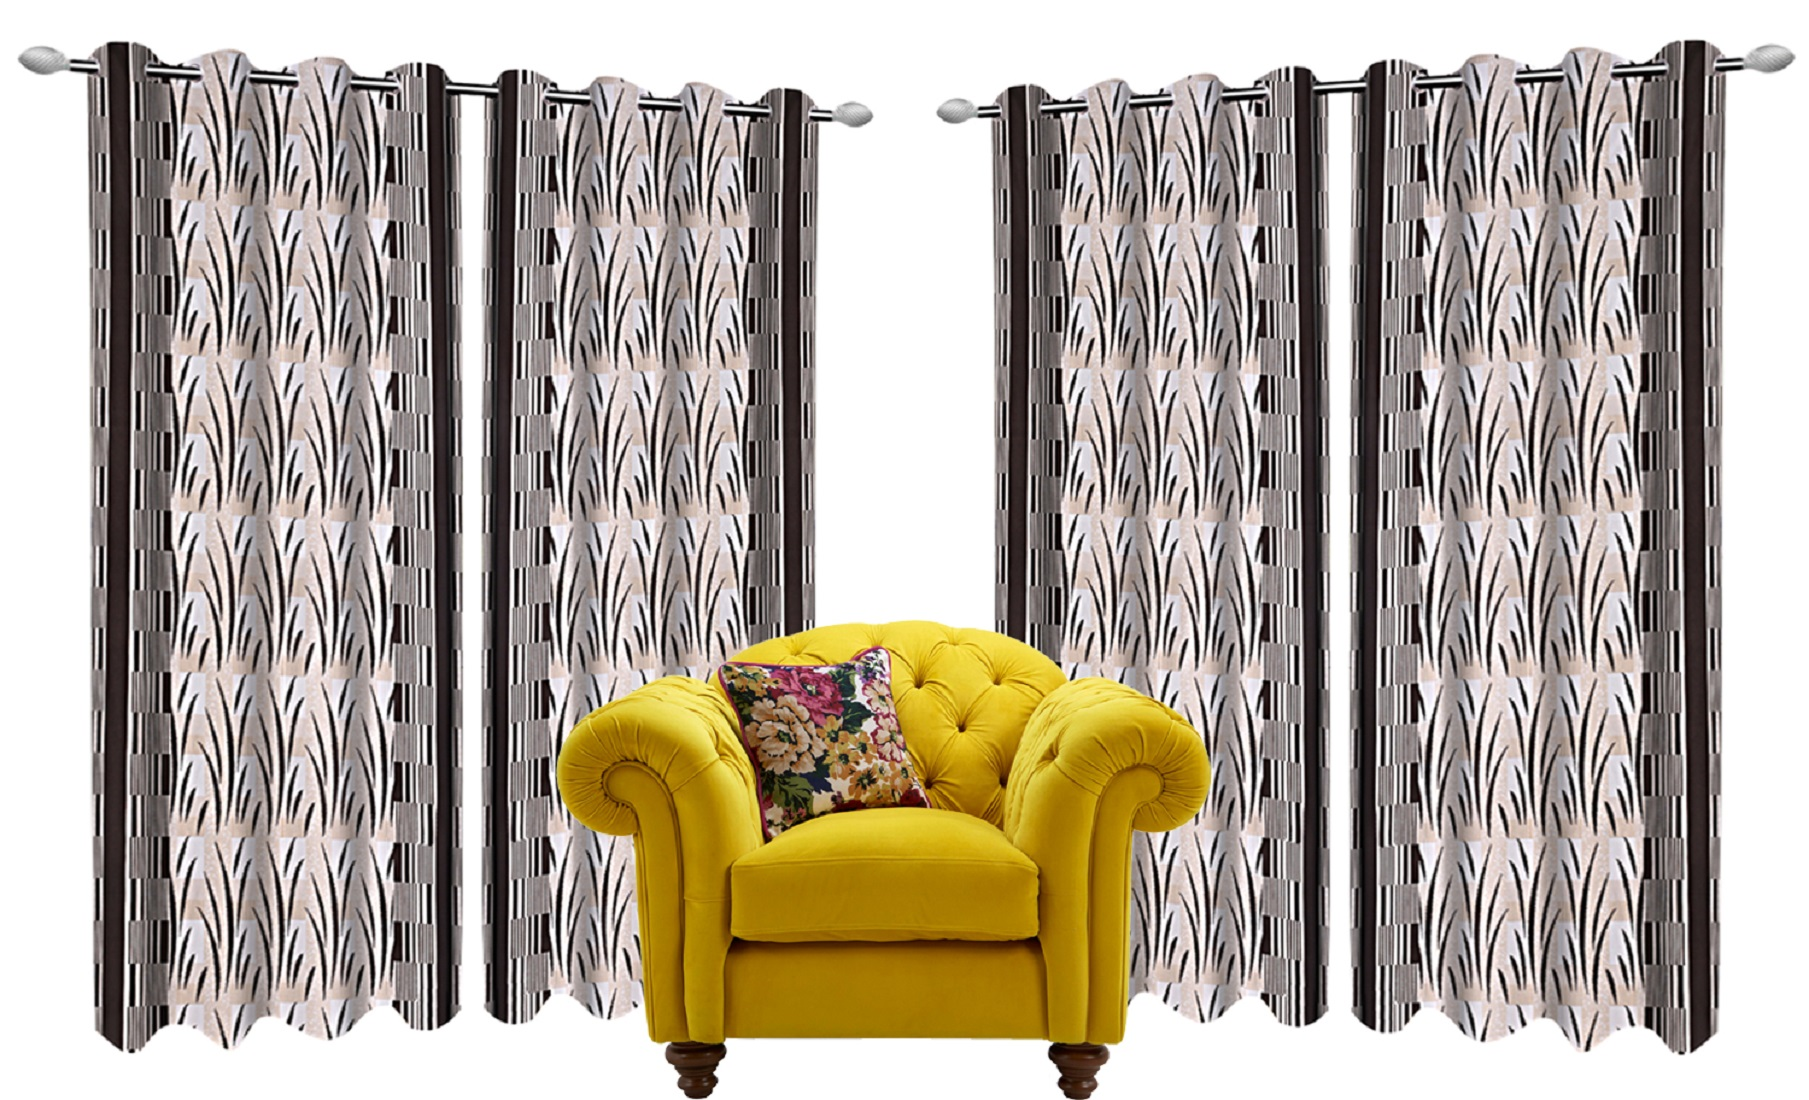 Kuber Industries Floral Design 4 Pieces Polyester Eyelet Door Curtain 7 Feet (Brown)-CTKTC14295